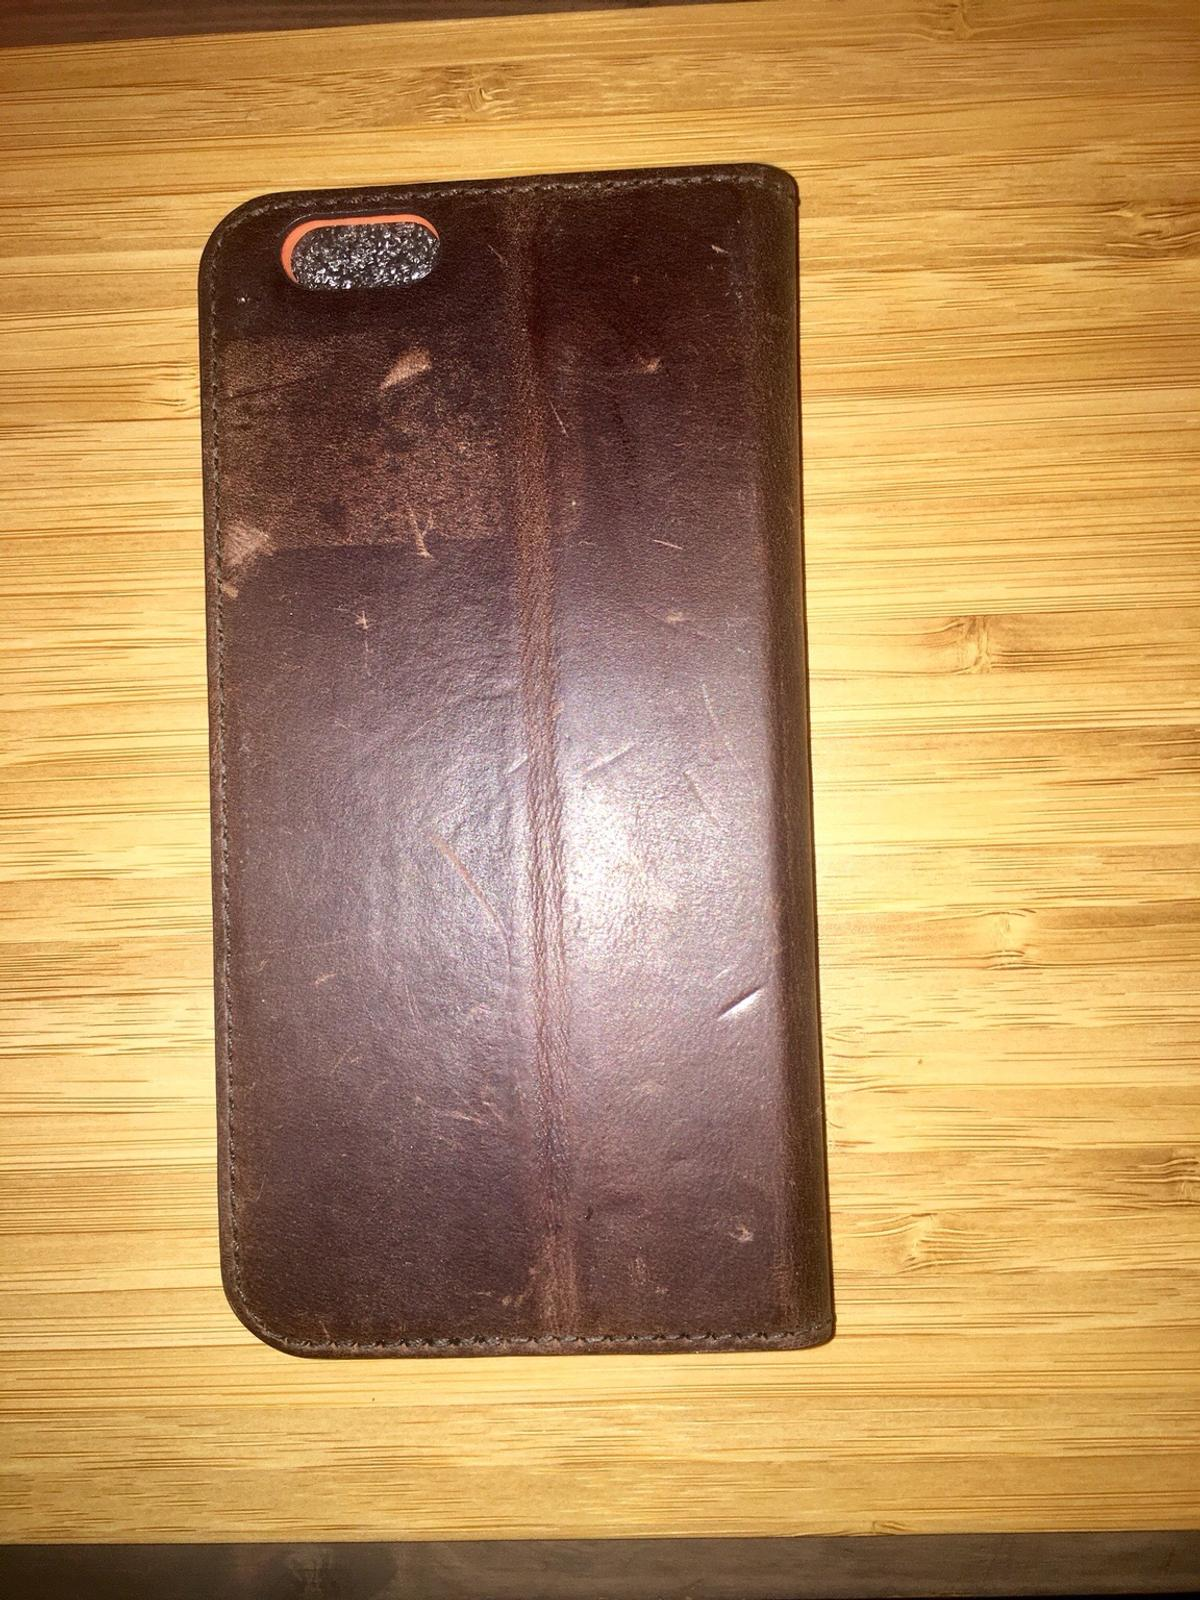 new arrival dc3db 8e289 Knomo leather iPhone 6 case in N1 Islington for £8.00 for sale - Shpock